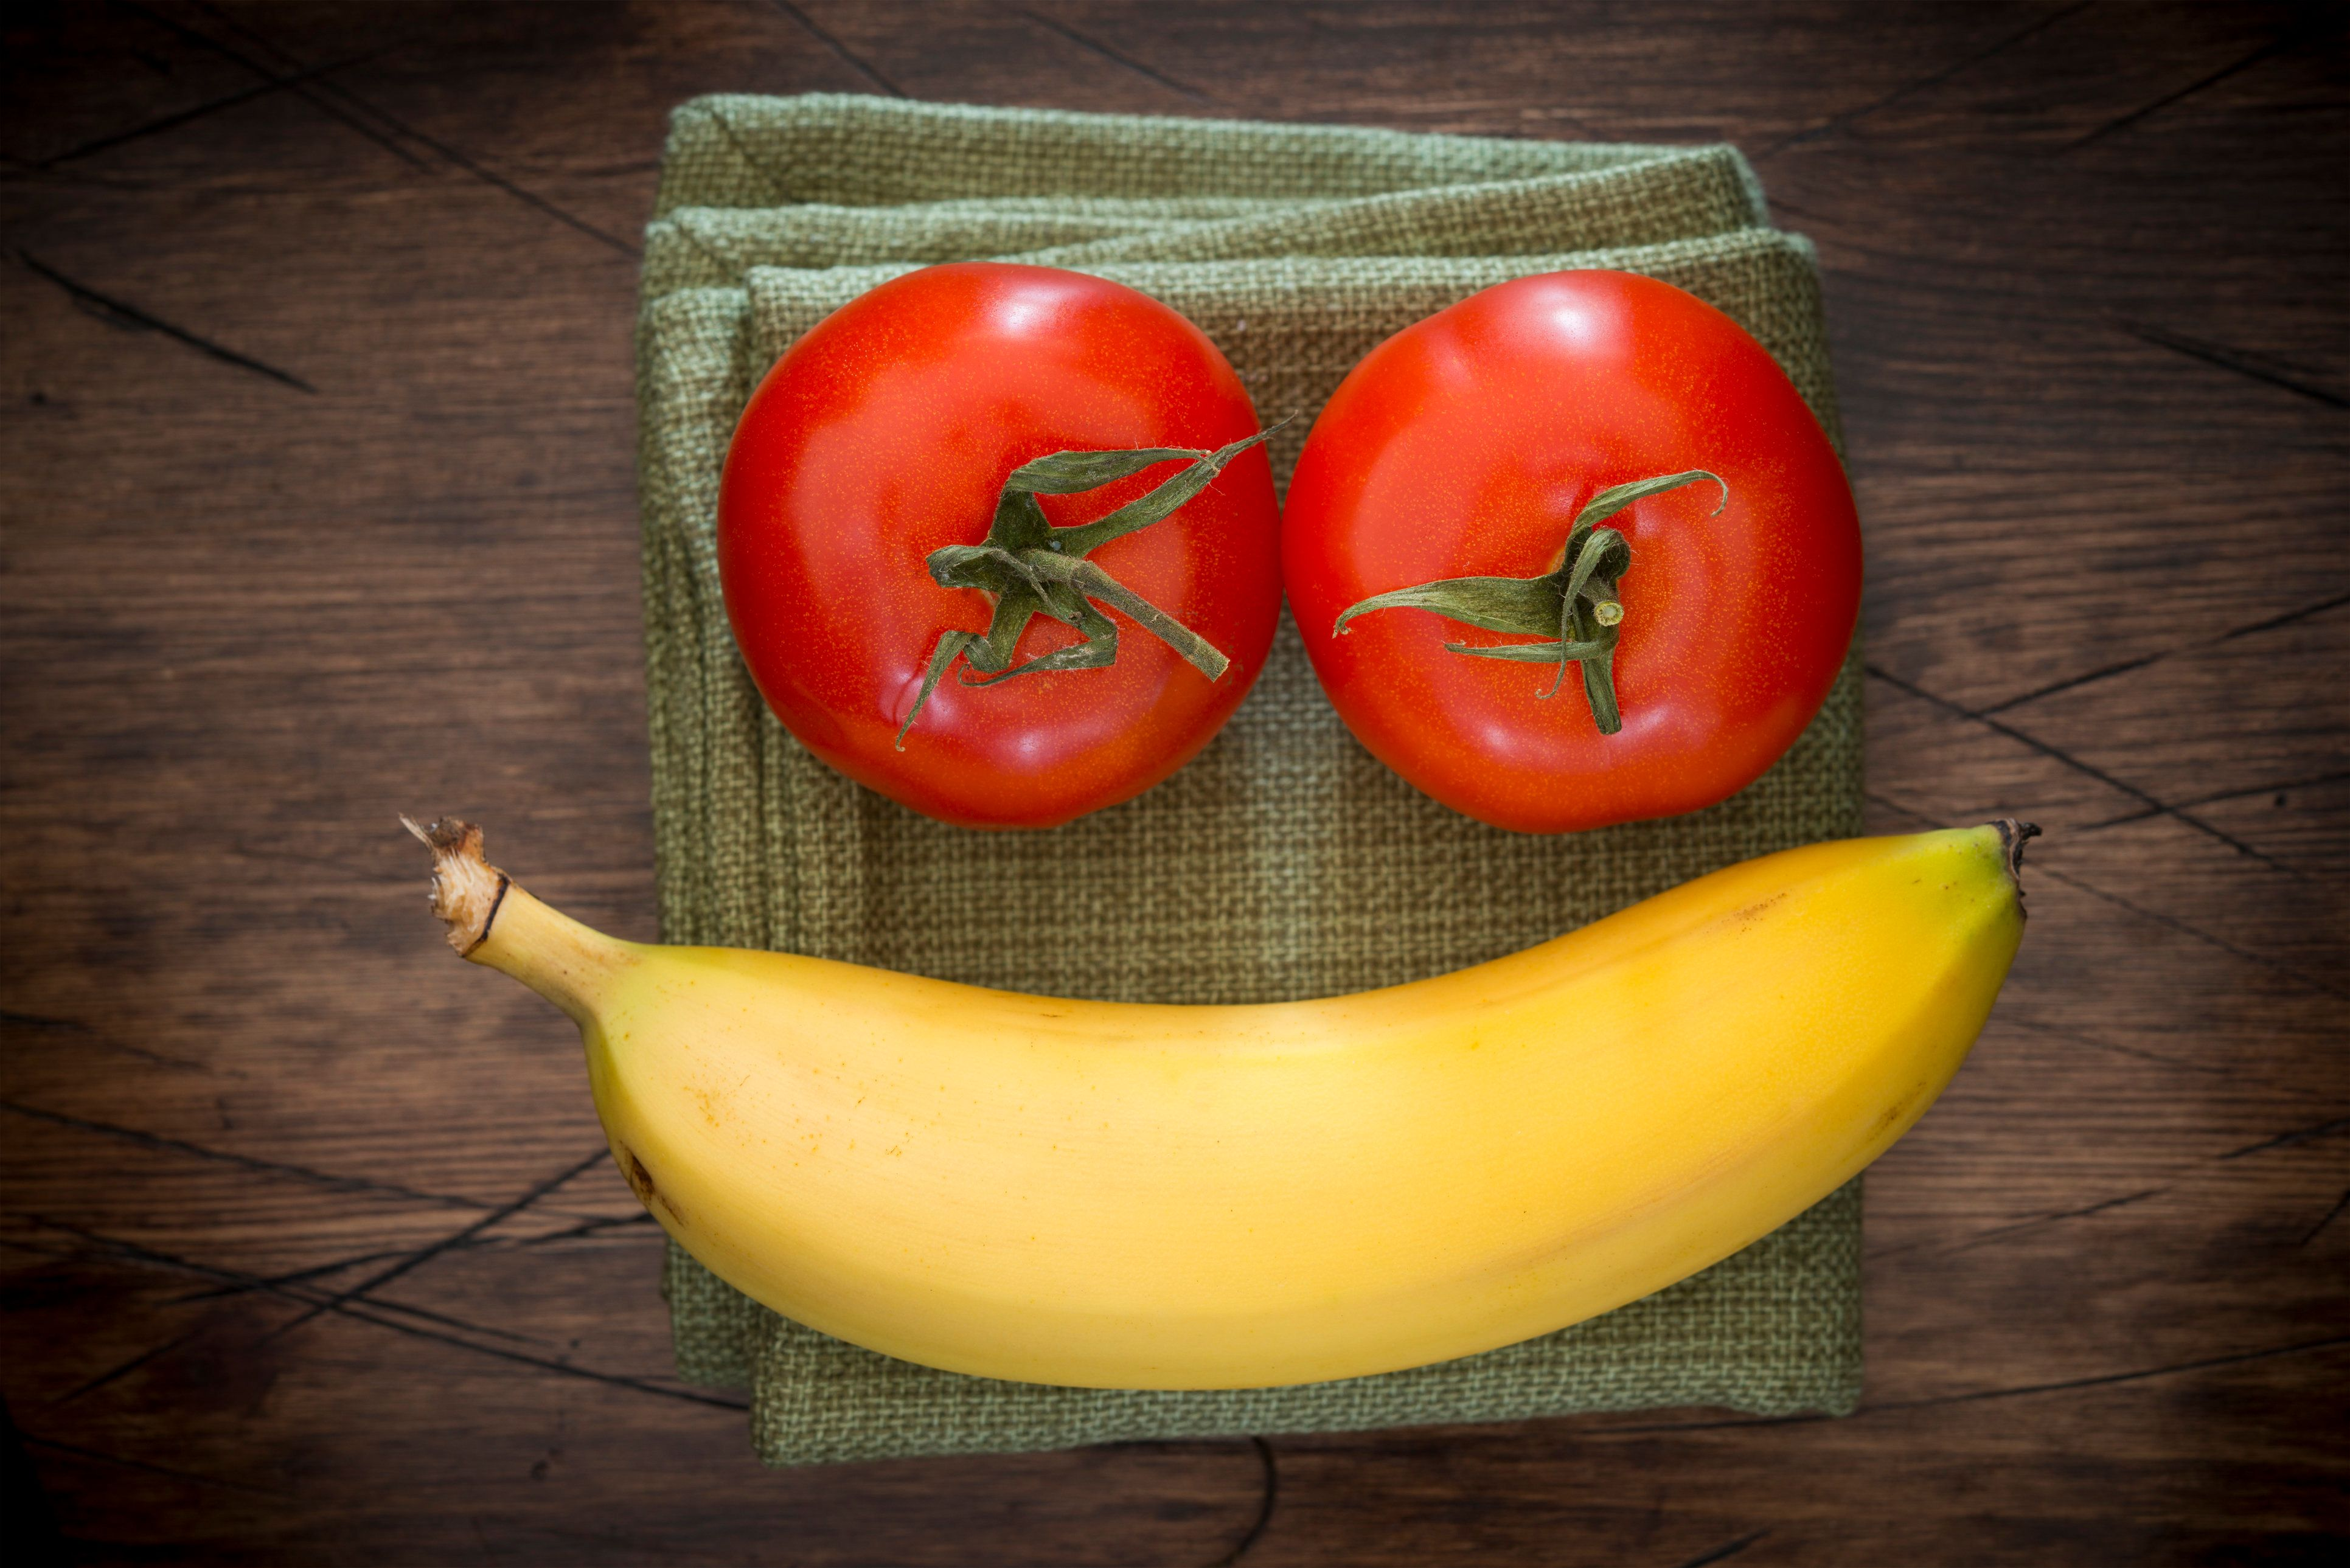 Fruit And Vegetables Scientifically Proven To 'Boost